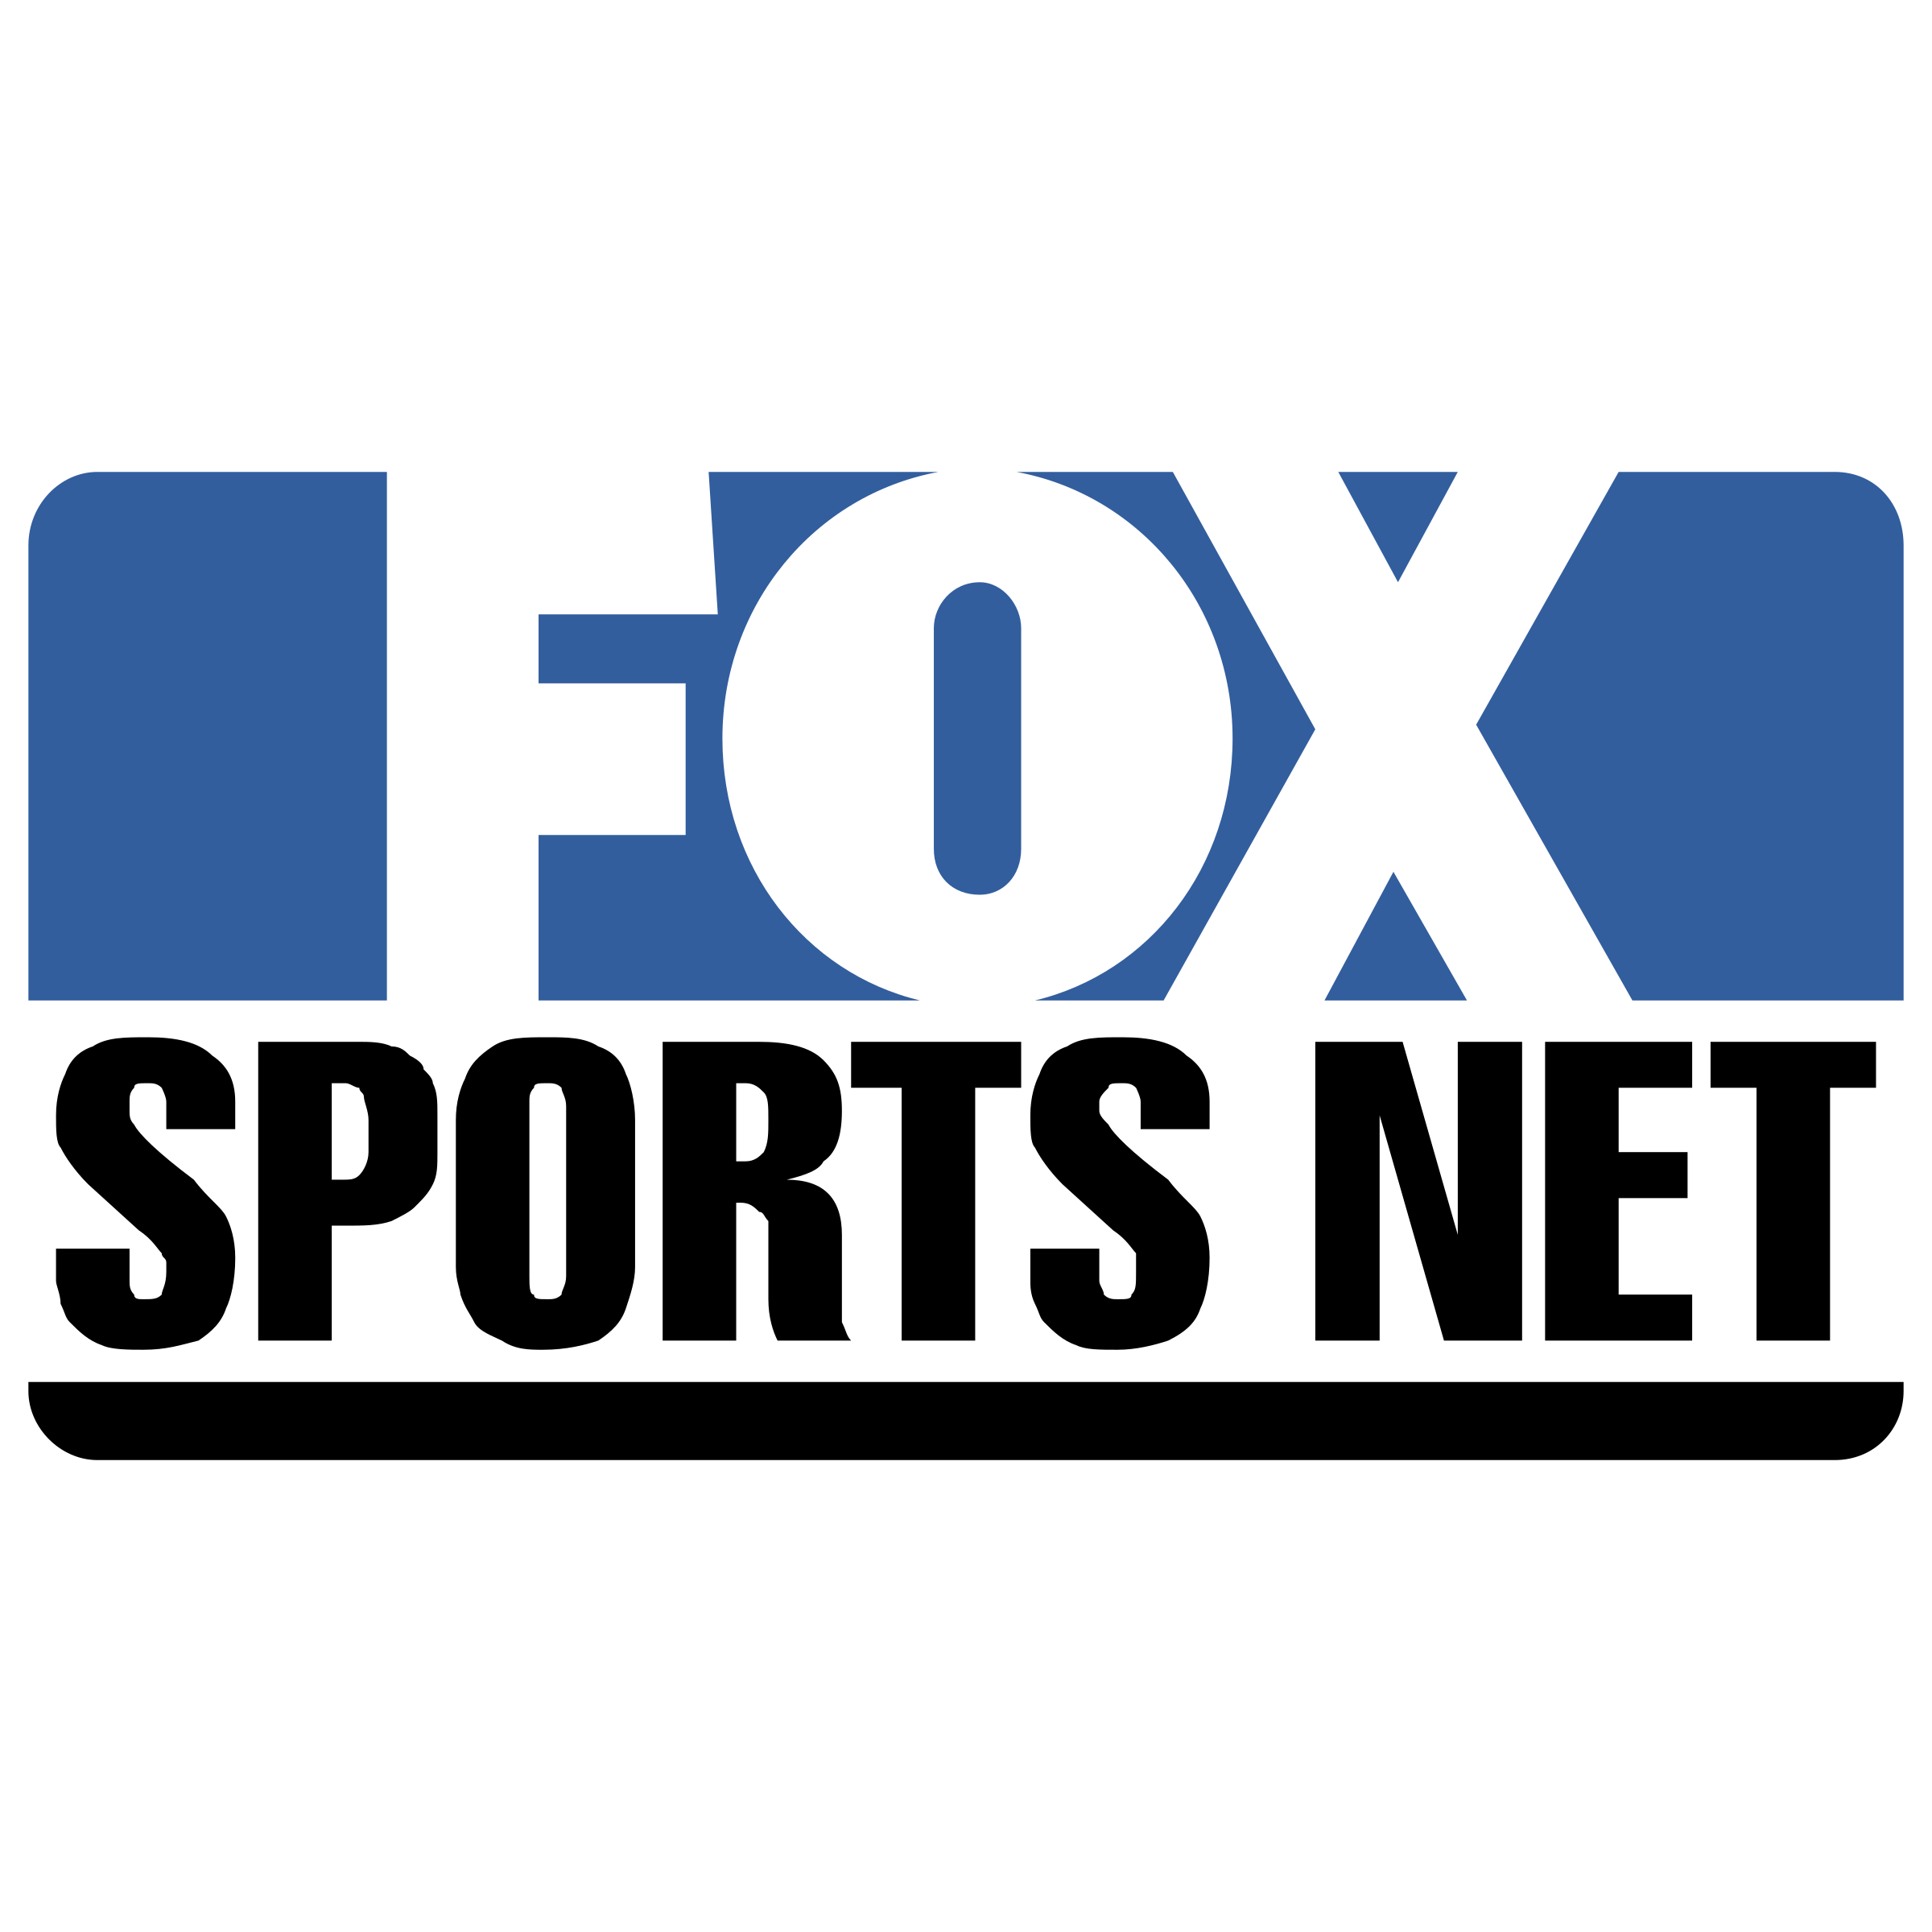 Fox sports 1 logo png. Net transparent svg vector